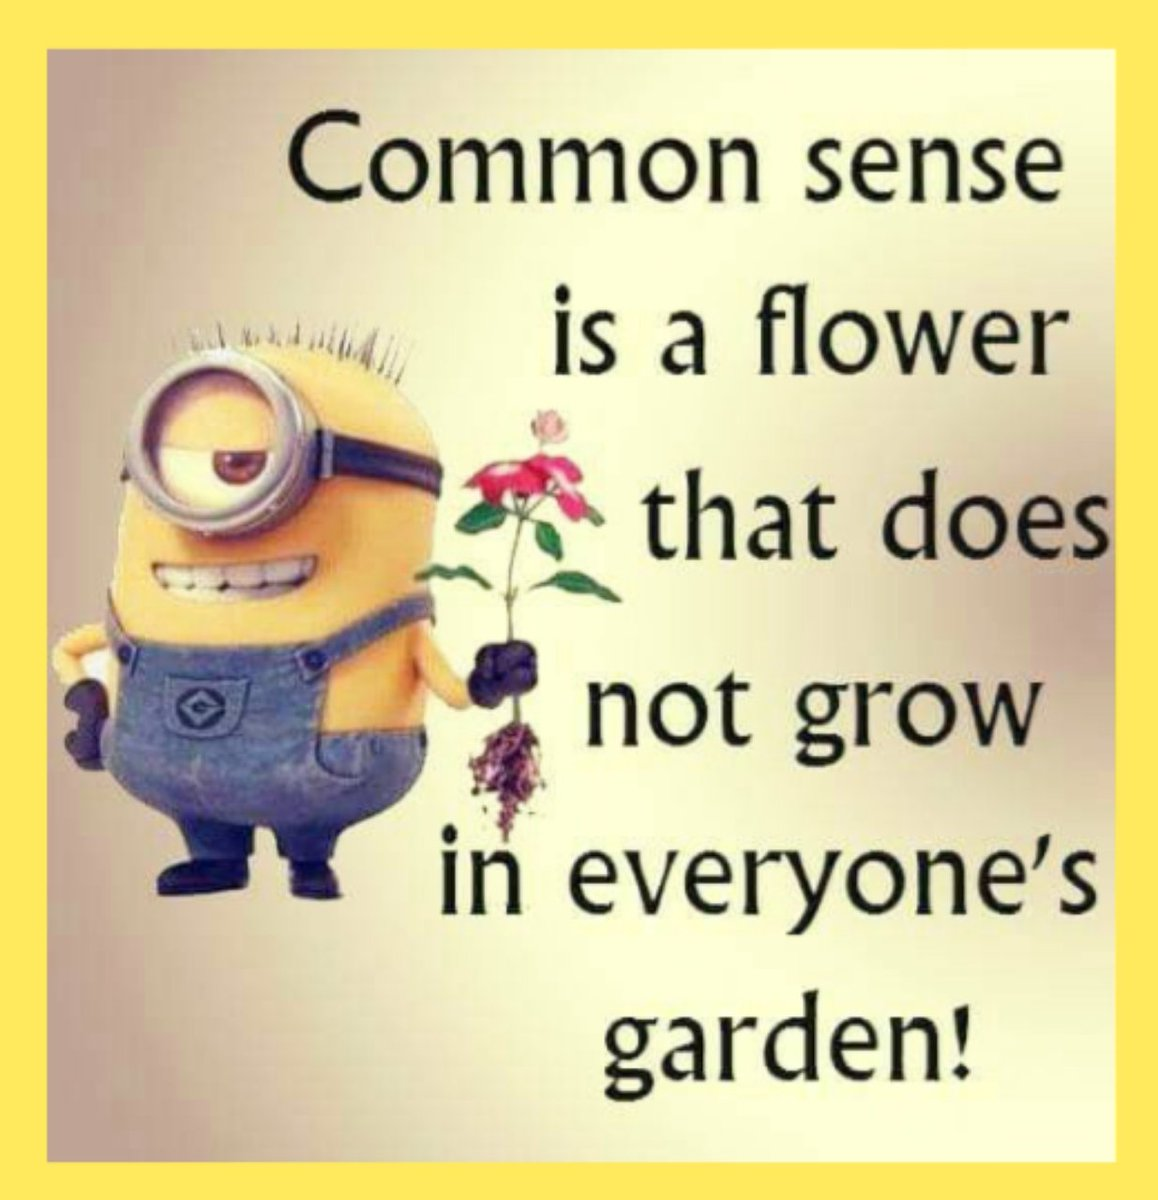 Common sense is very uncommon...🤭 #CommonSense #uncommon #TrueStory #FunFact #life #people #Weird #stupidity #Crazy #mondaythoughts #MondayVibes #MondayWisdom #quotes #relatabletweets #bewise #becareful #Mindfulness #haveaniceday #StayBlessed